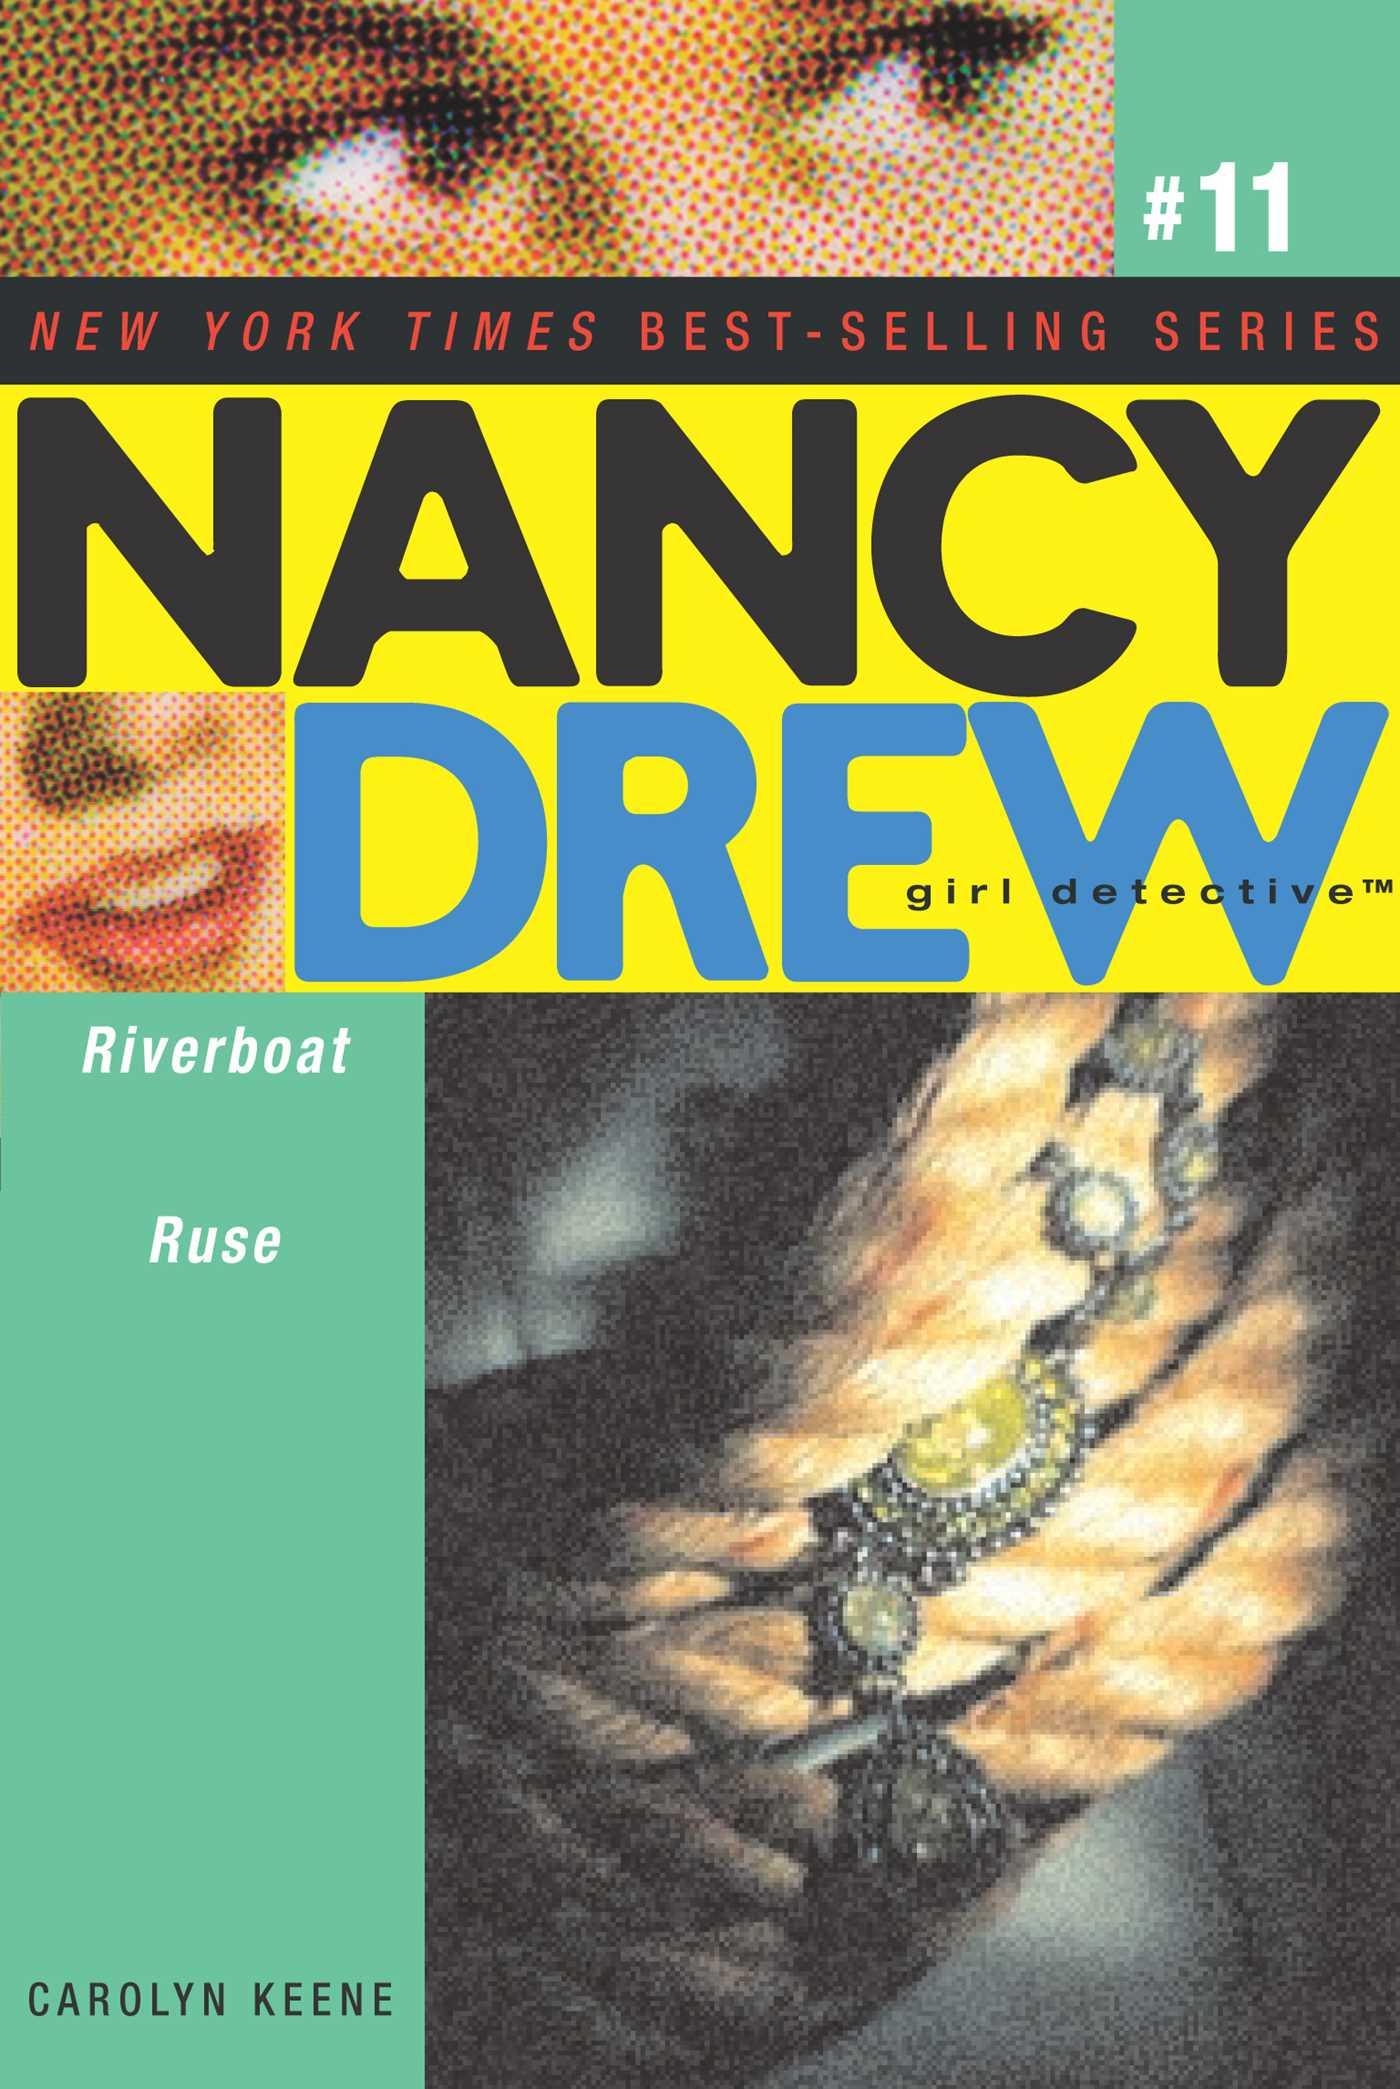 Riverboat-ruse-9781439113202_hr